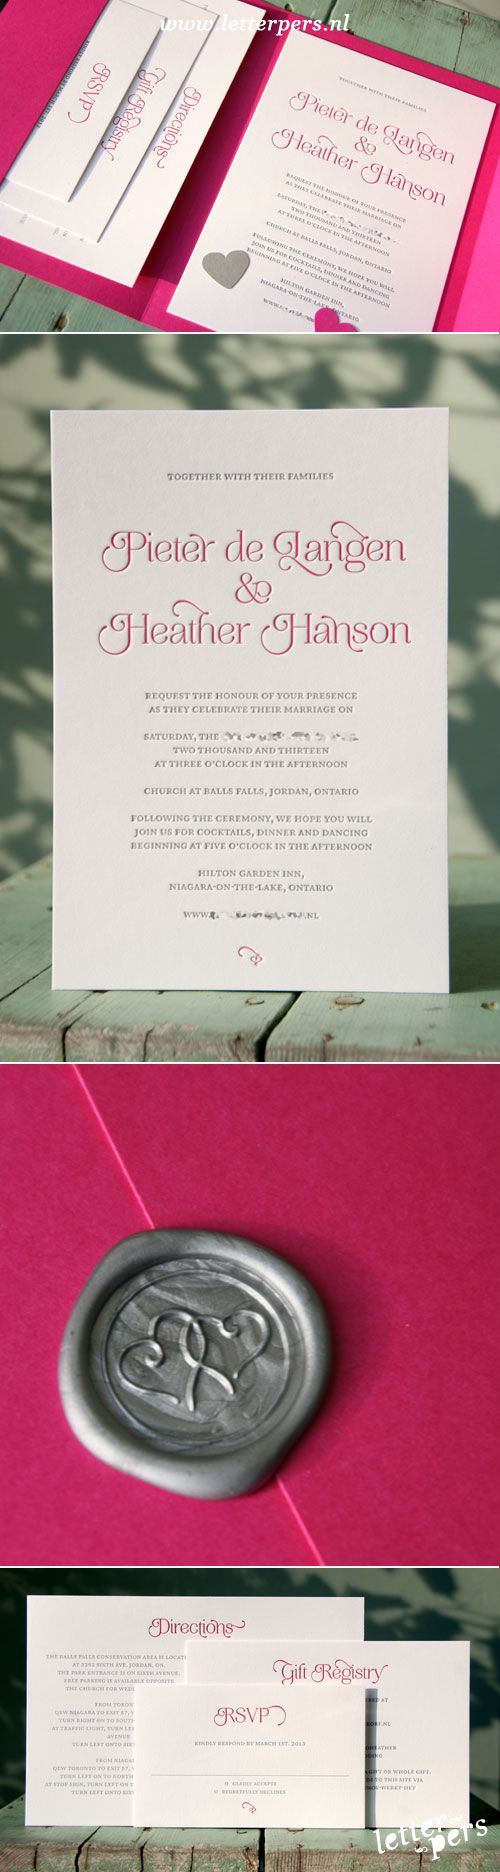 94 best Wedding Invitation images on Pinterest | Engagement ...